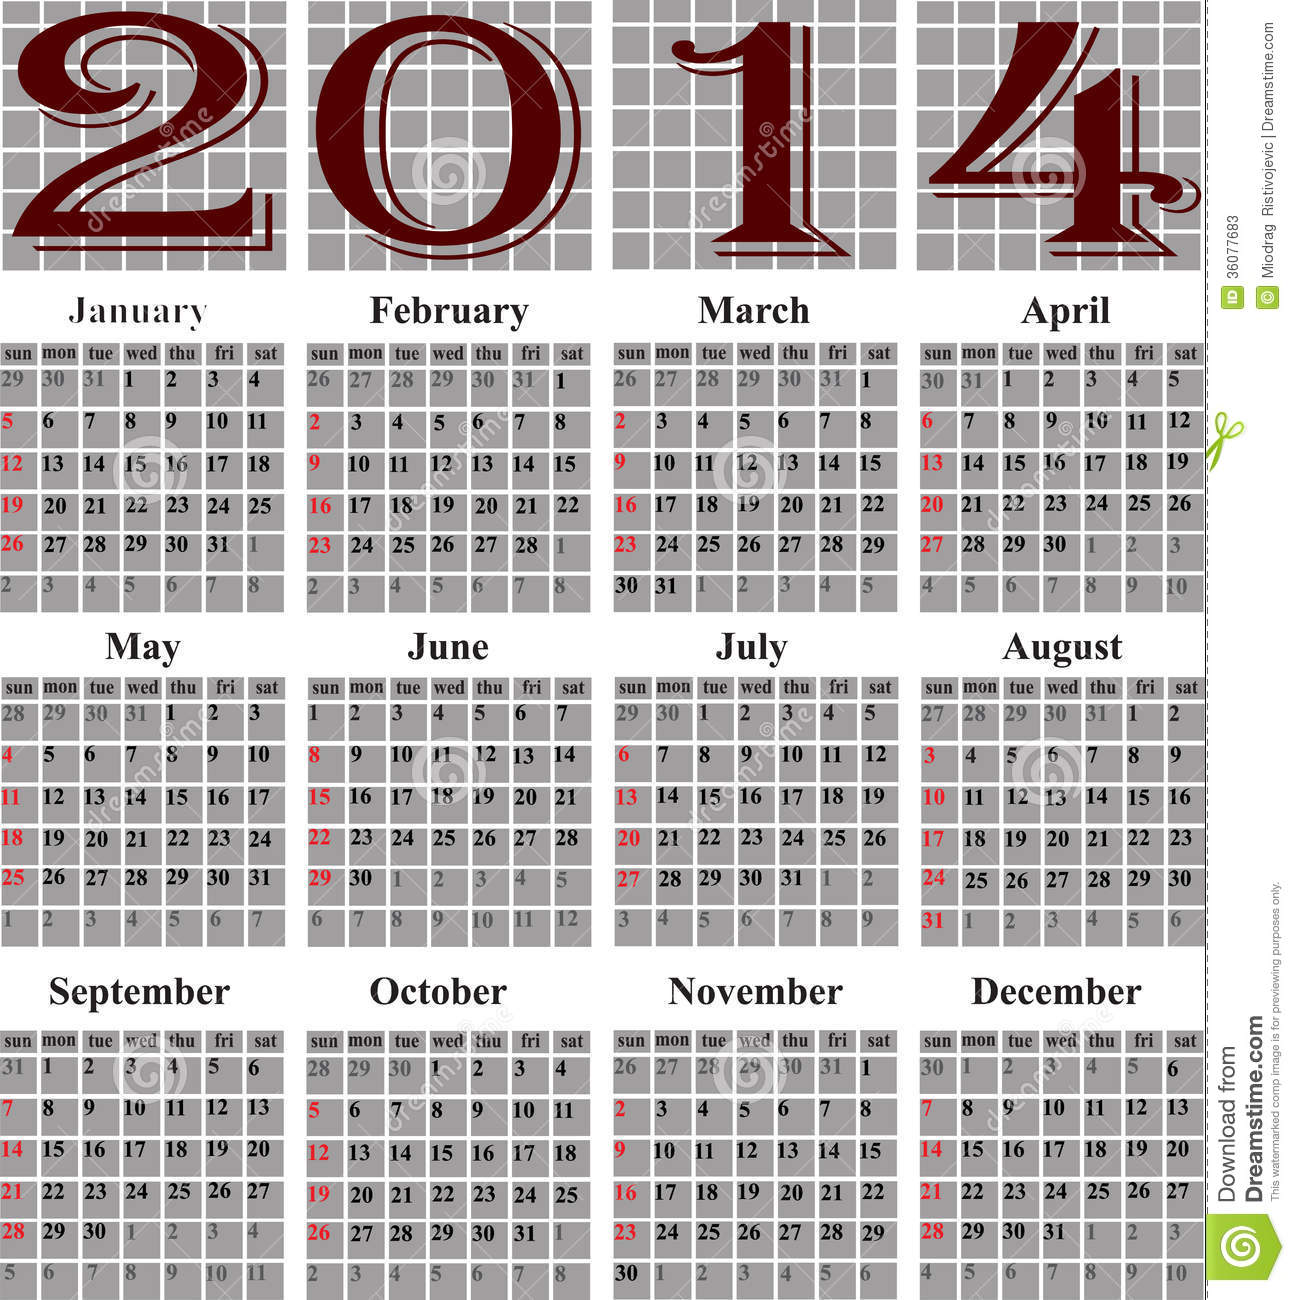 julian calendar 2014 Ideal.vistalist.co